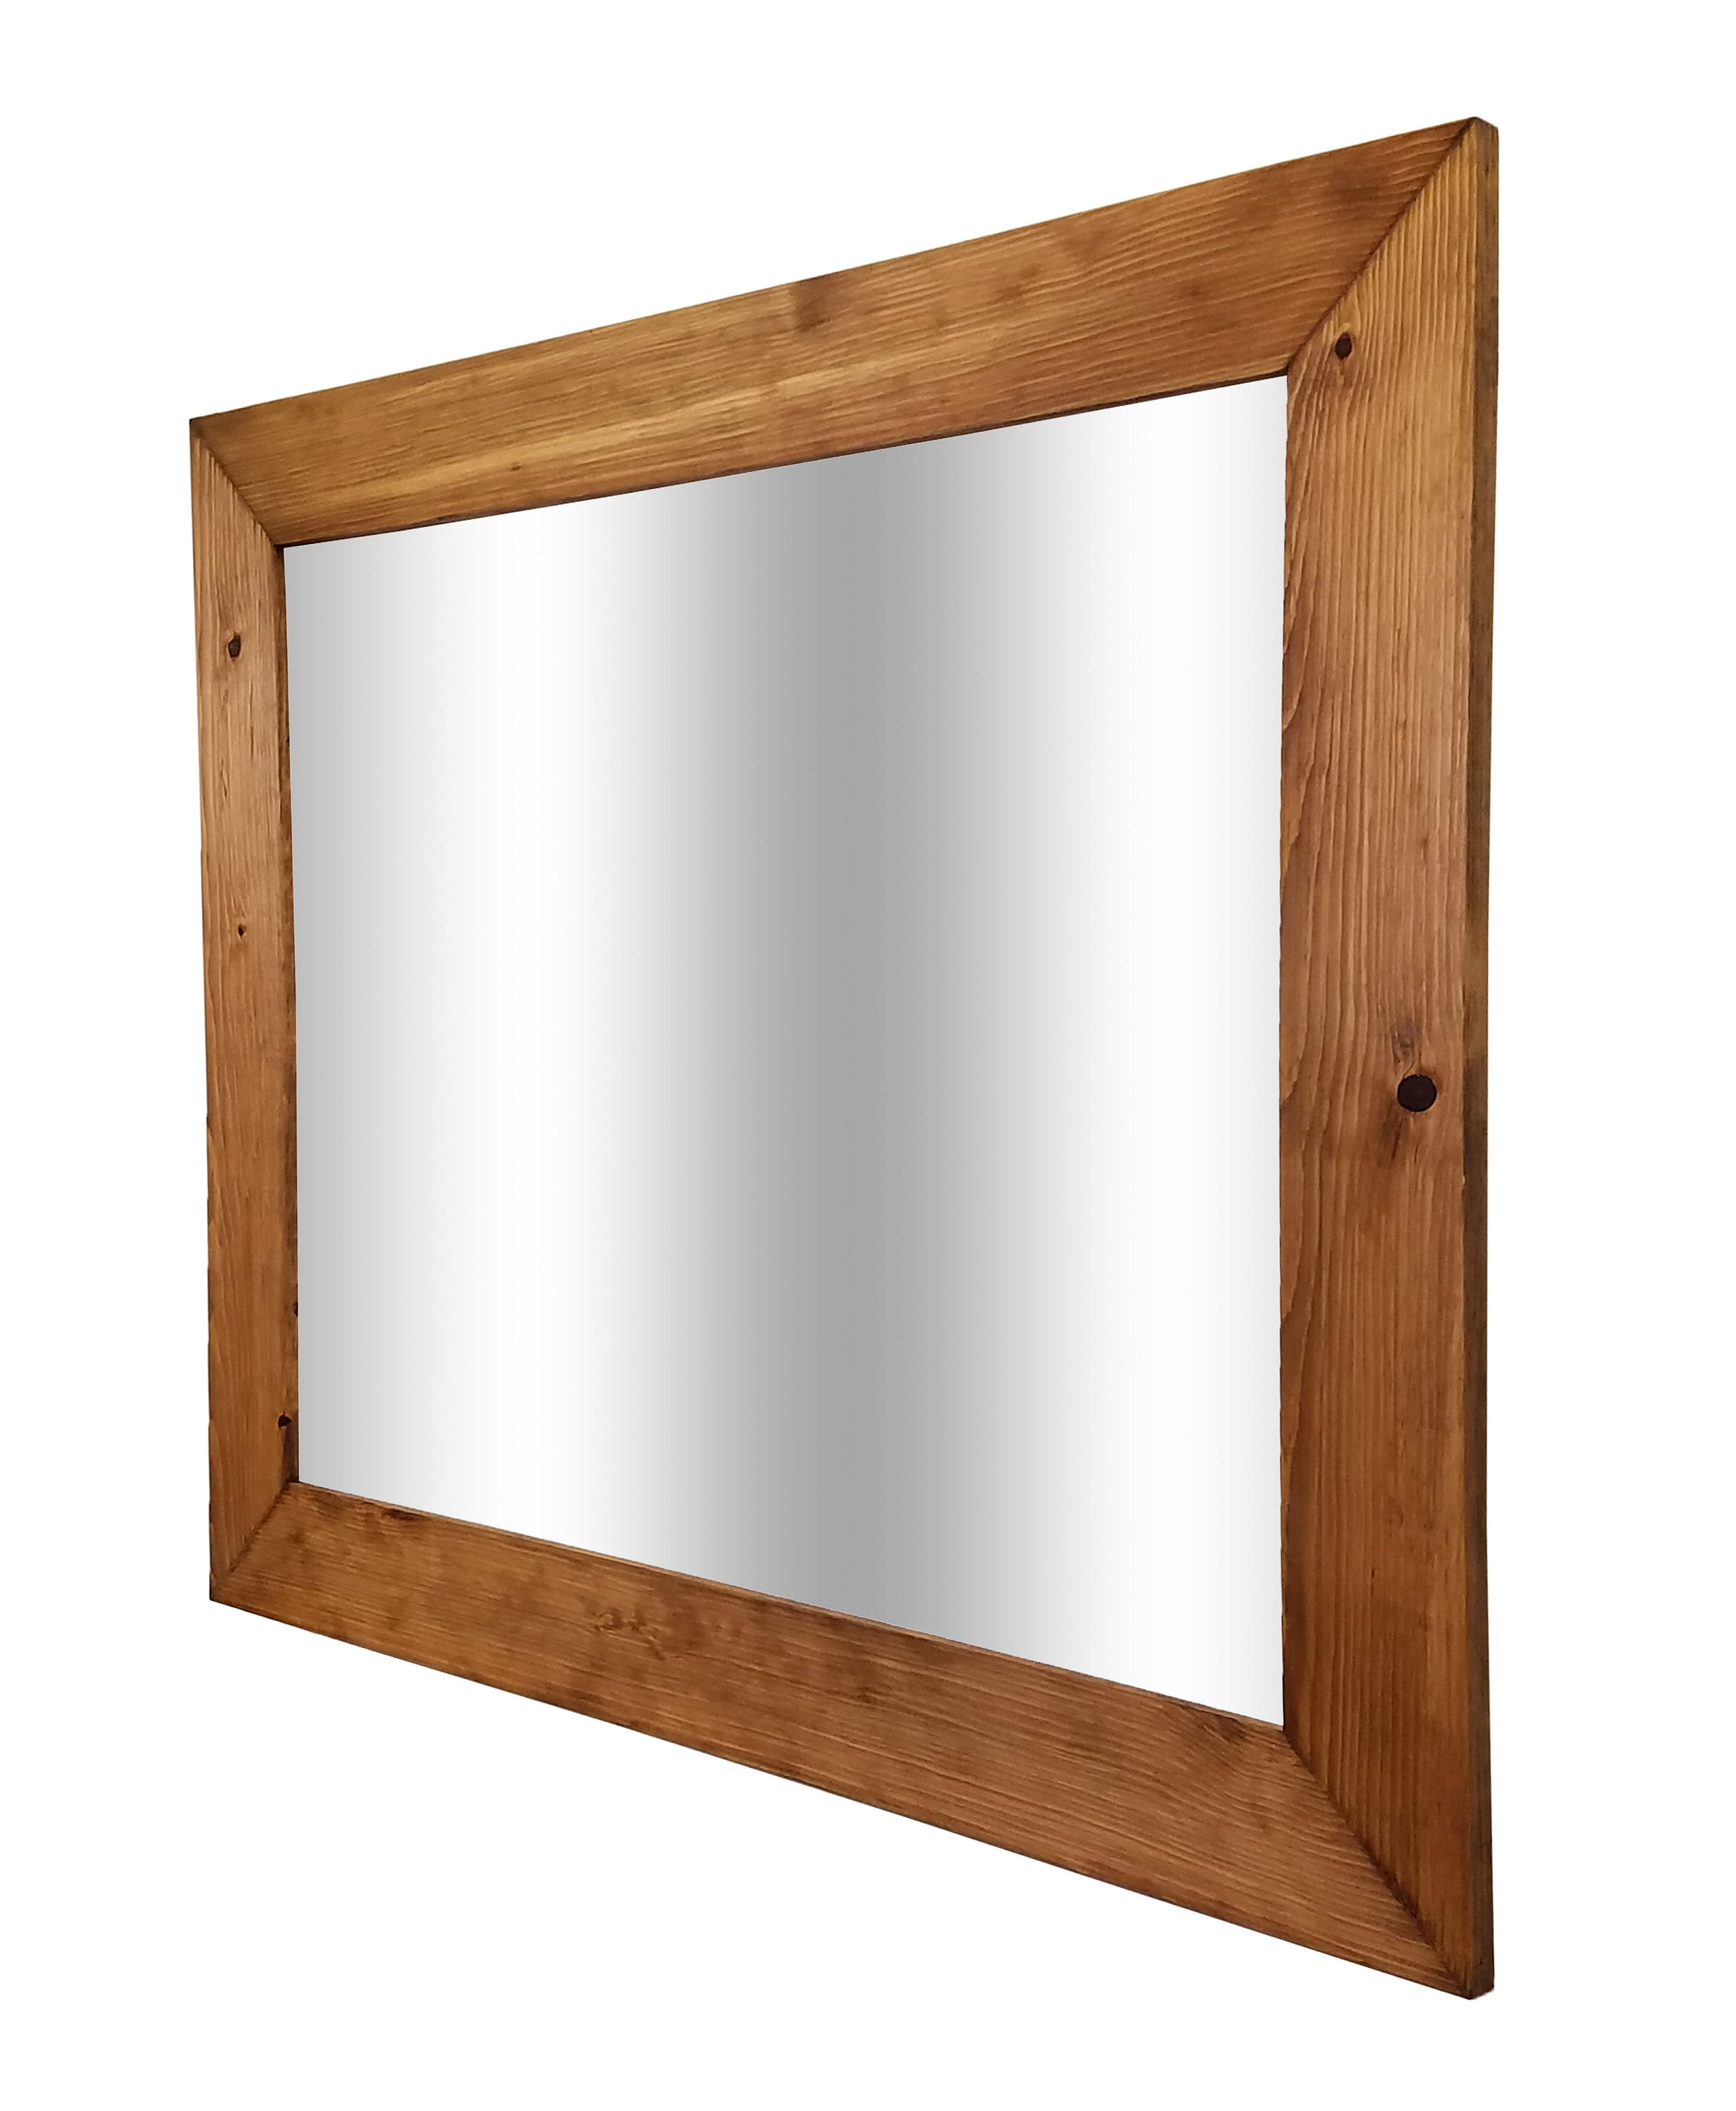 Shiplap Reclaimed Wood Mirror Shown in Early American, 4 Sizes & 20 Stains - Renewed Decor & Storage